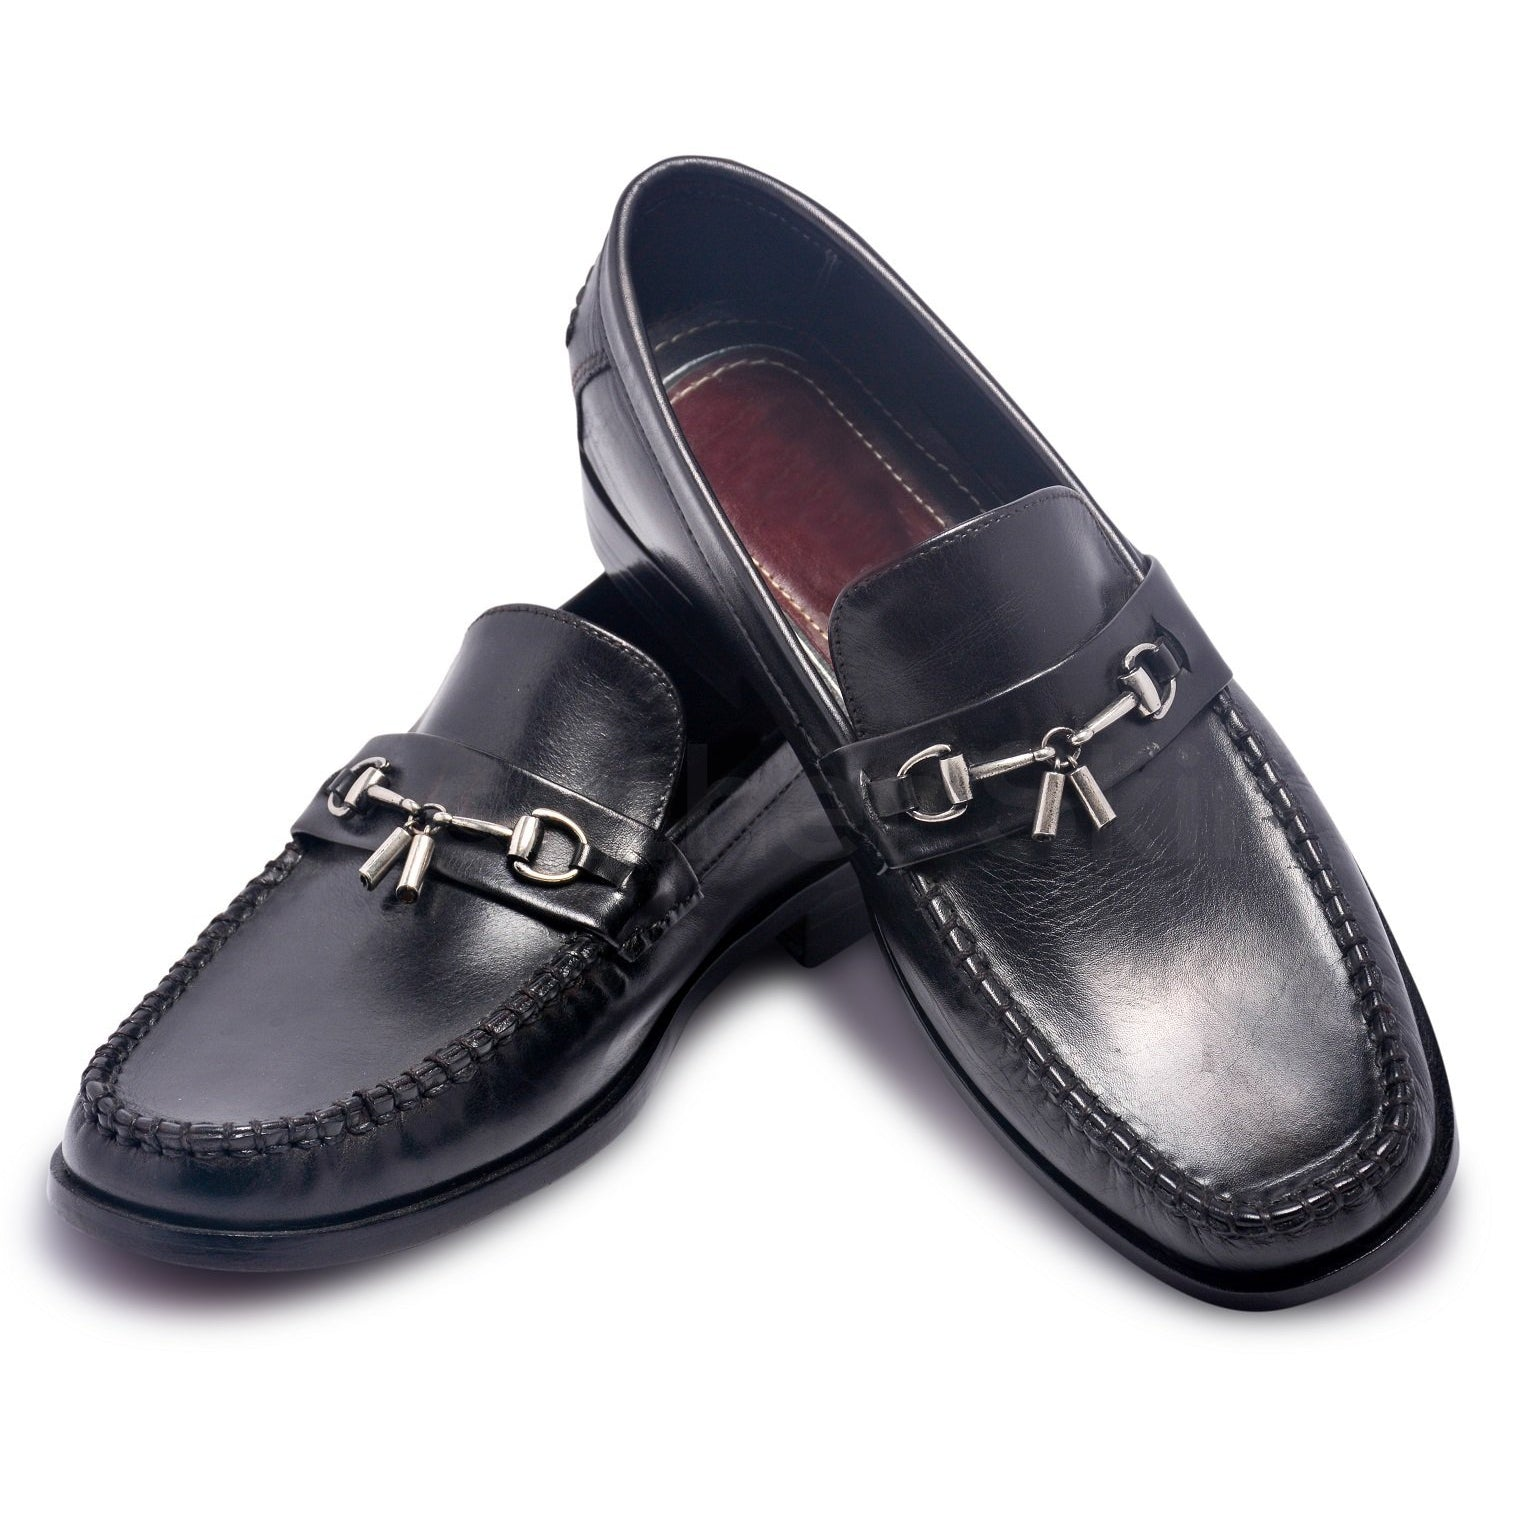 Bit Loafer Slip-On Genuine Shoes with Metal Tassels for Mens